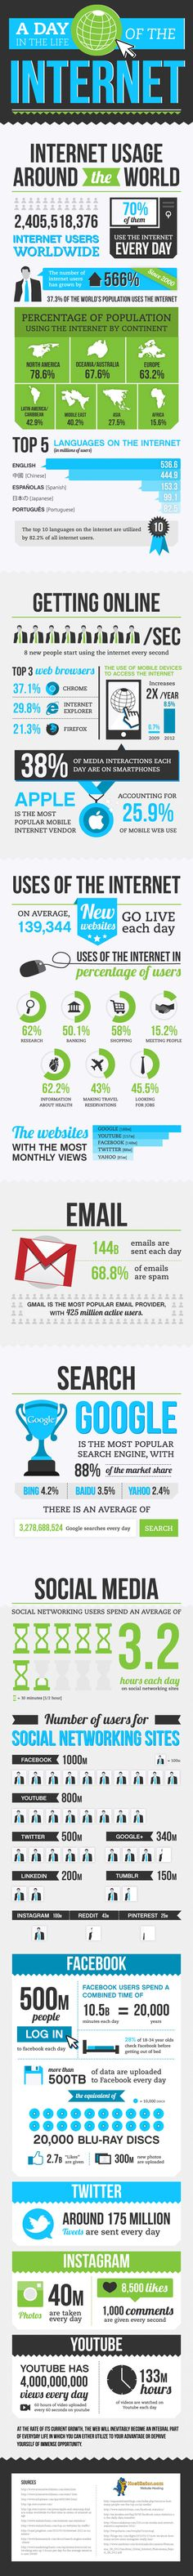 A Day In The Life Of The Internet - infographic